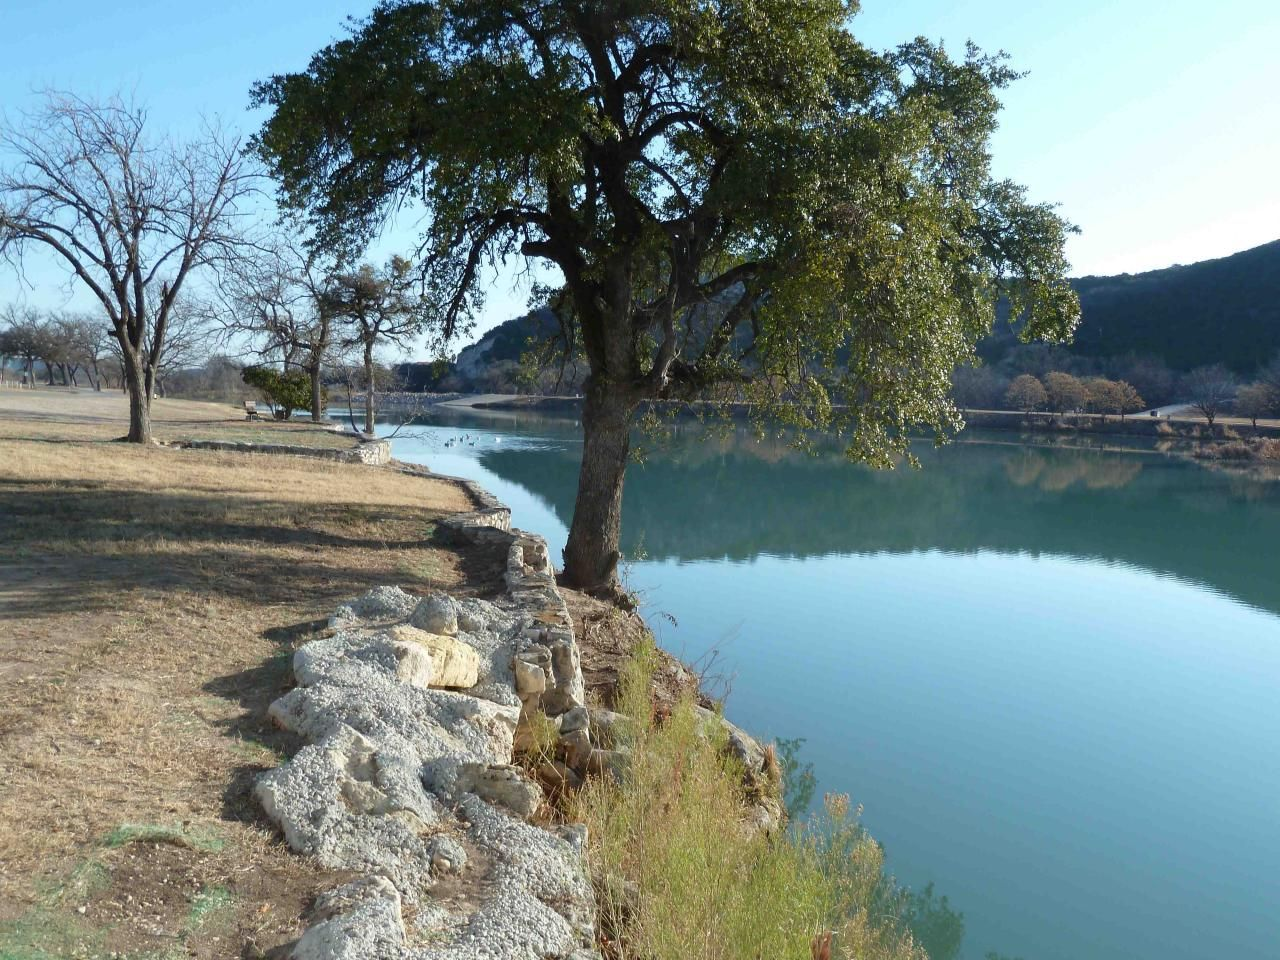 Pin By Sandy Nail On Photography Texas Travel Junction Texas Texas Hill Country